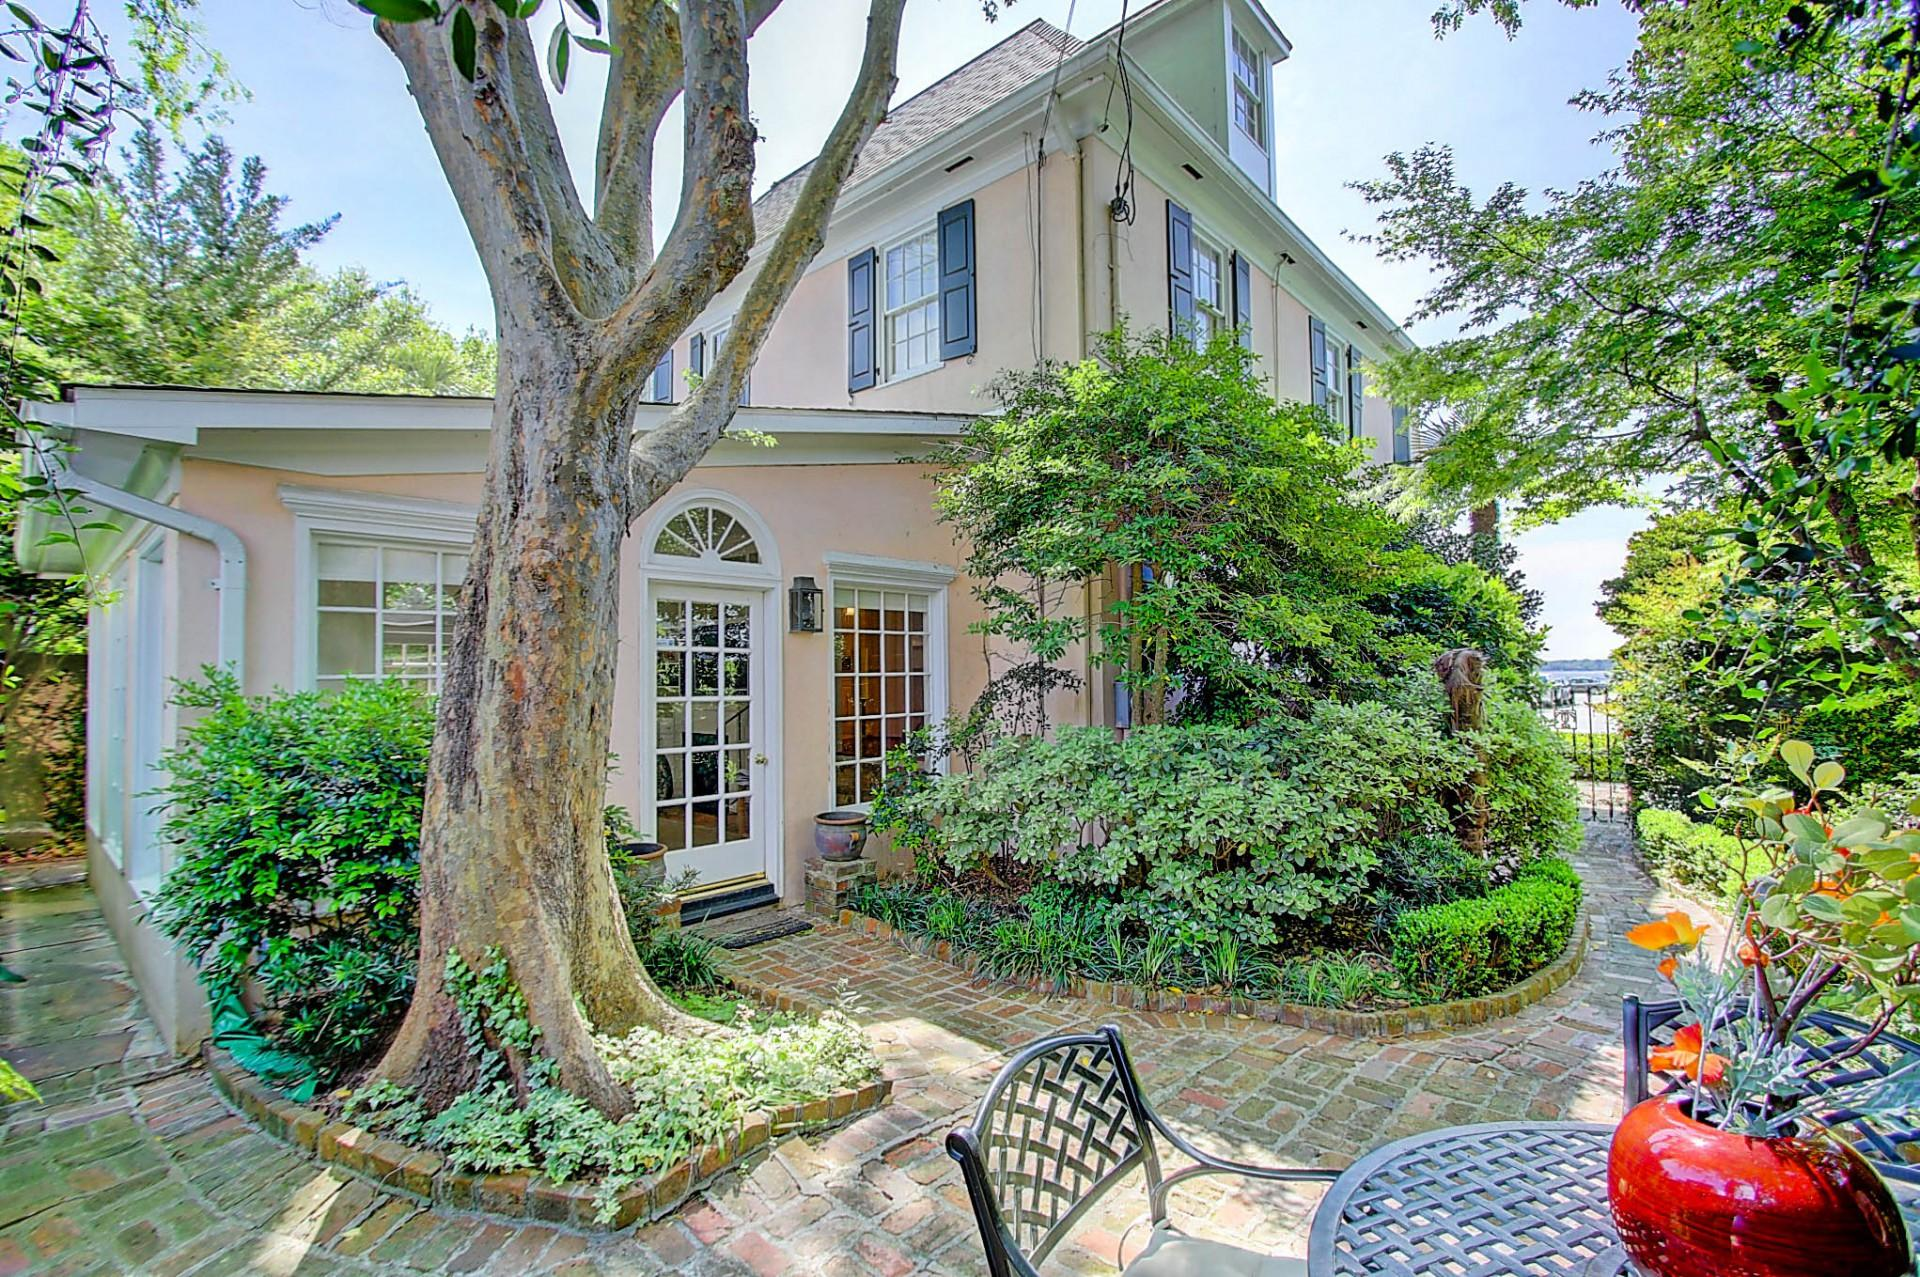 Home for sale 2 Battery Place, South Of Broad, Downtown Charleston, SC